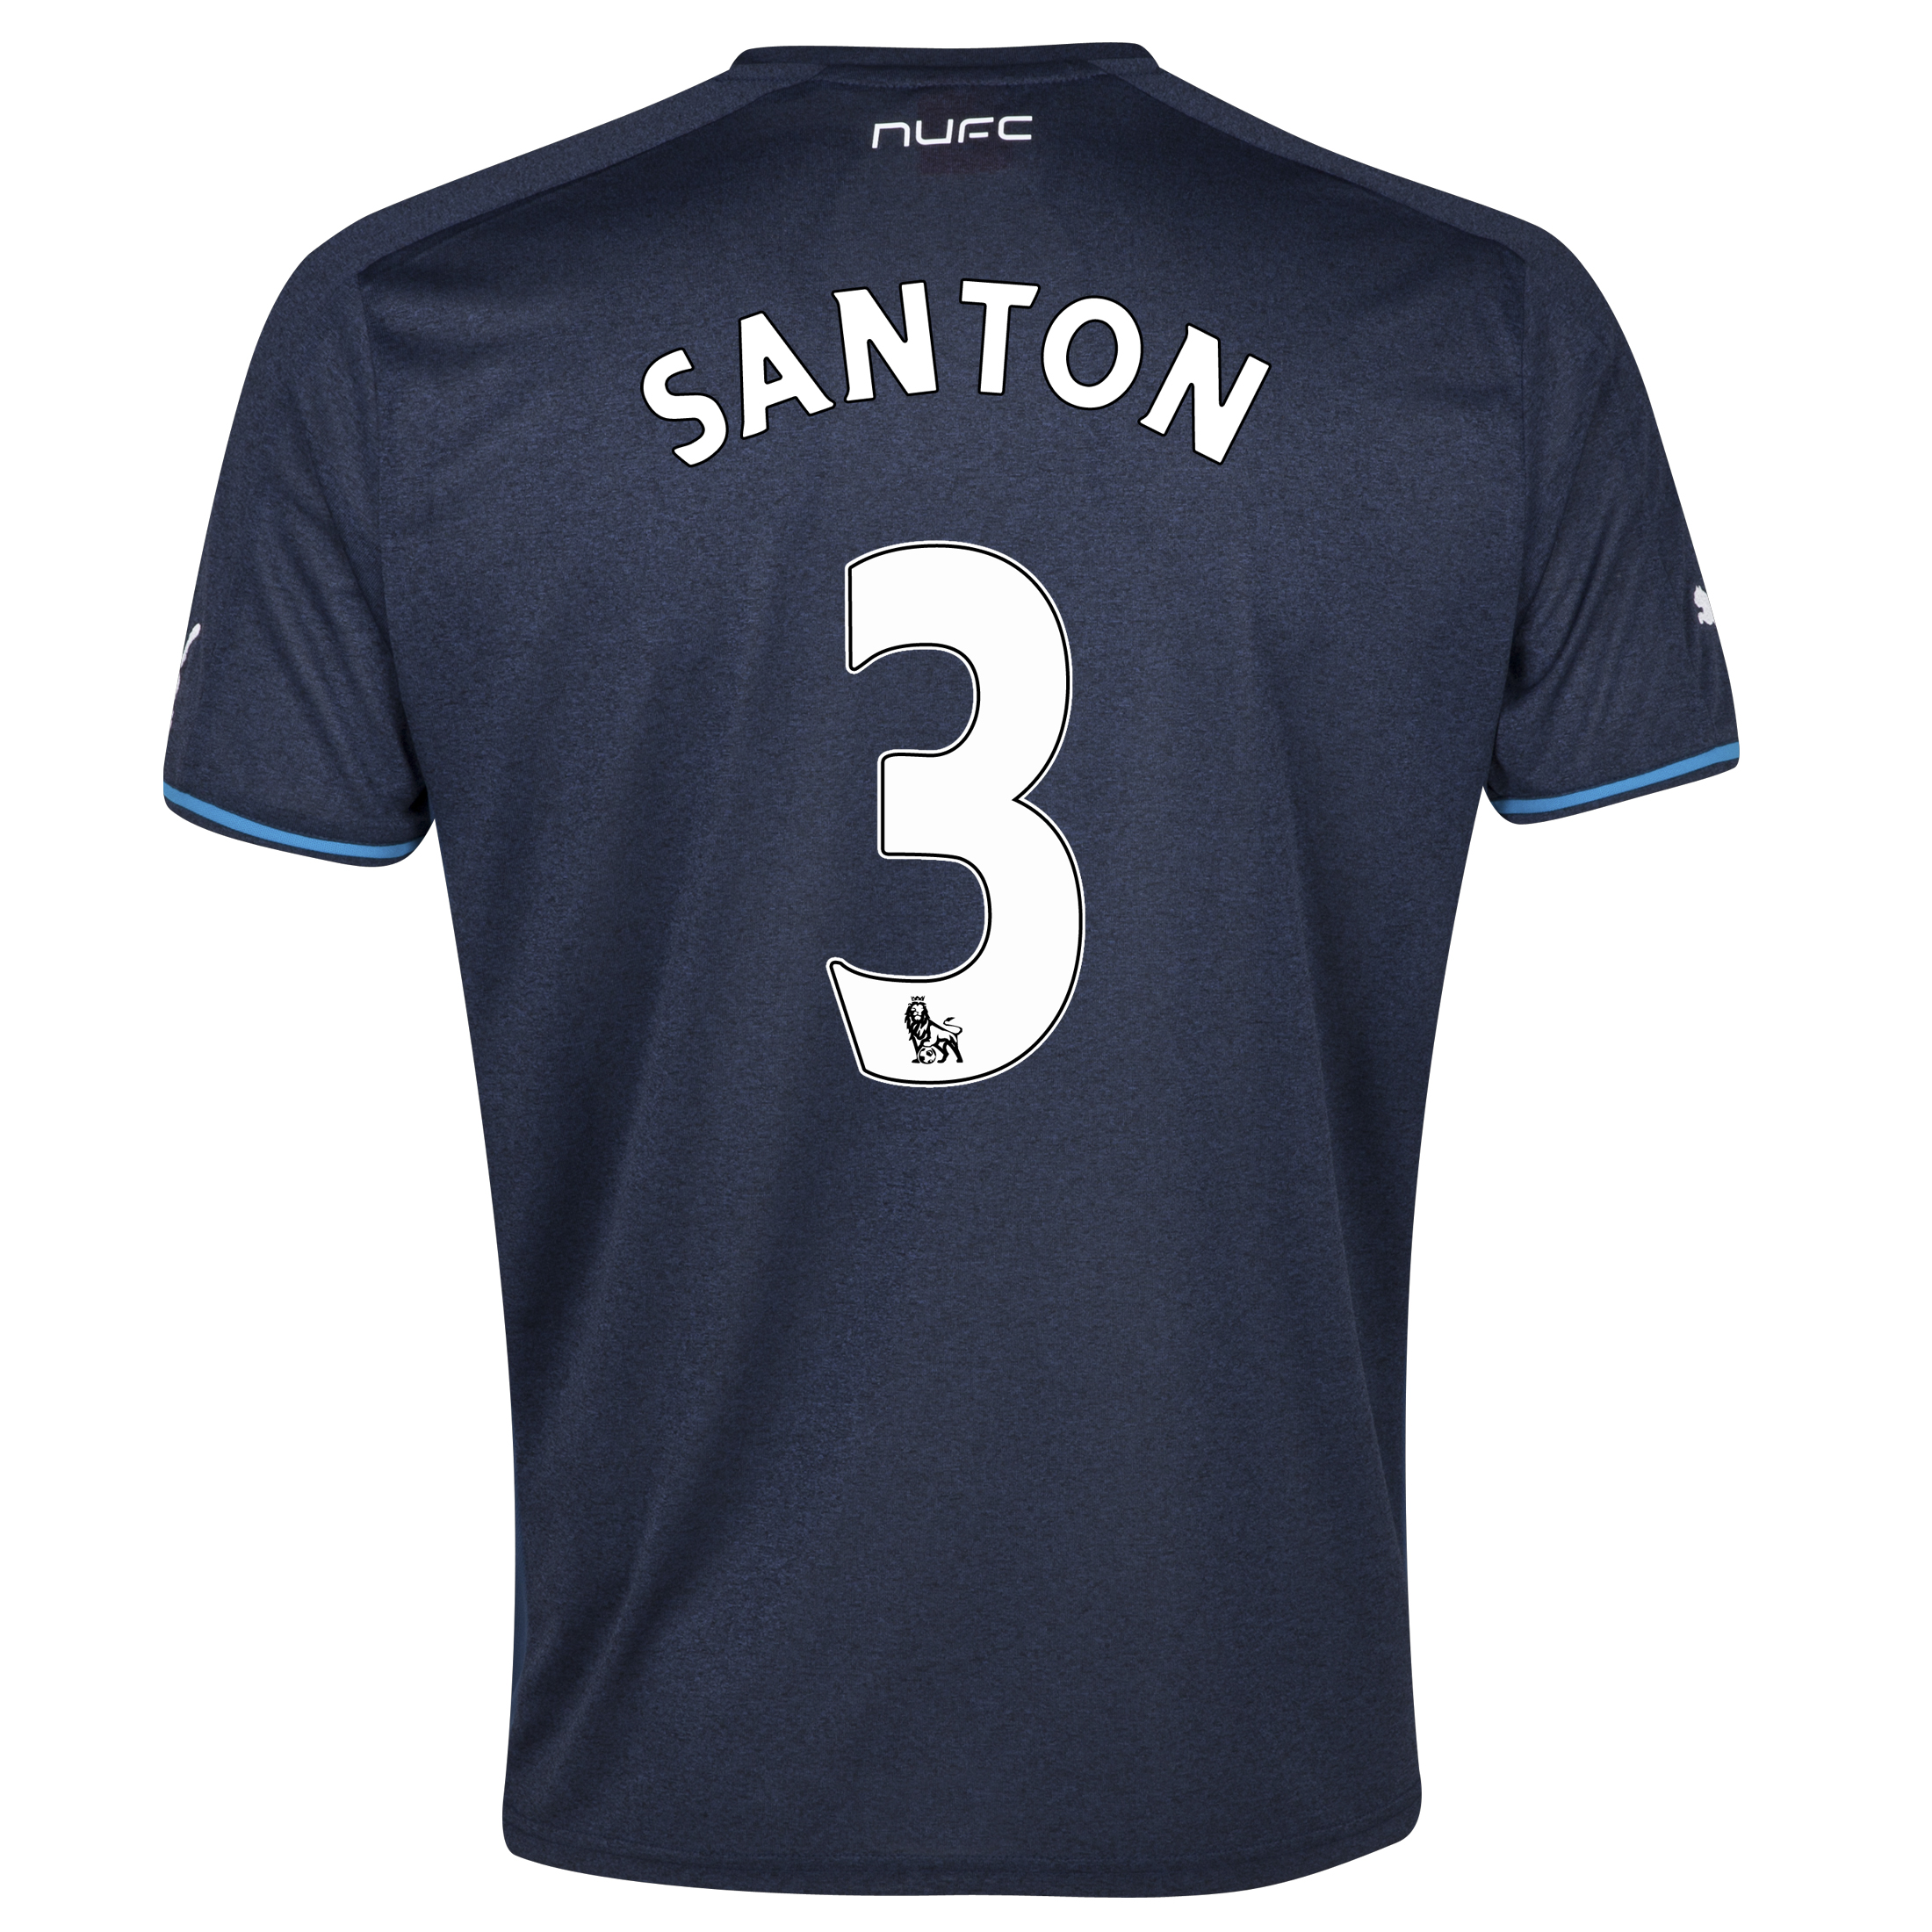 Newcastle United Away Shirt 2013/14 with Santon 3 printing